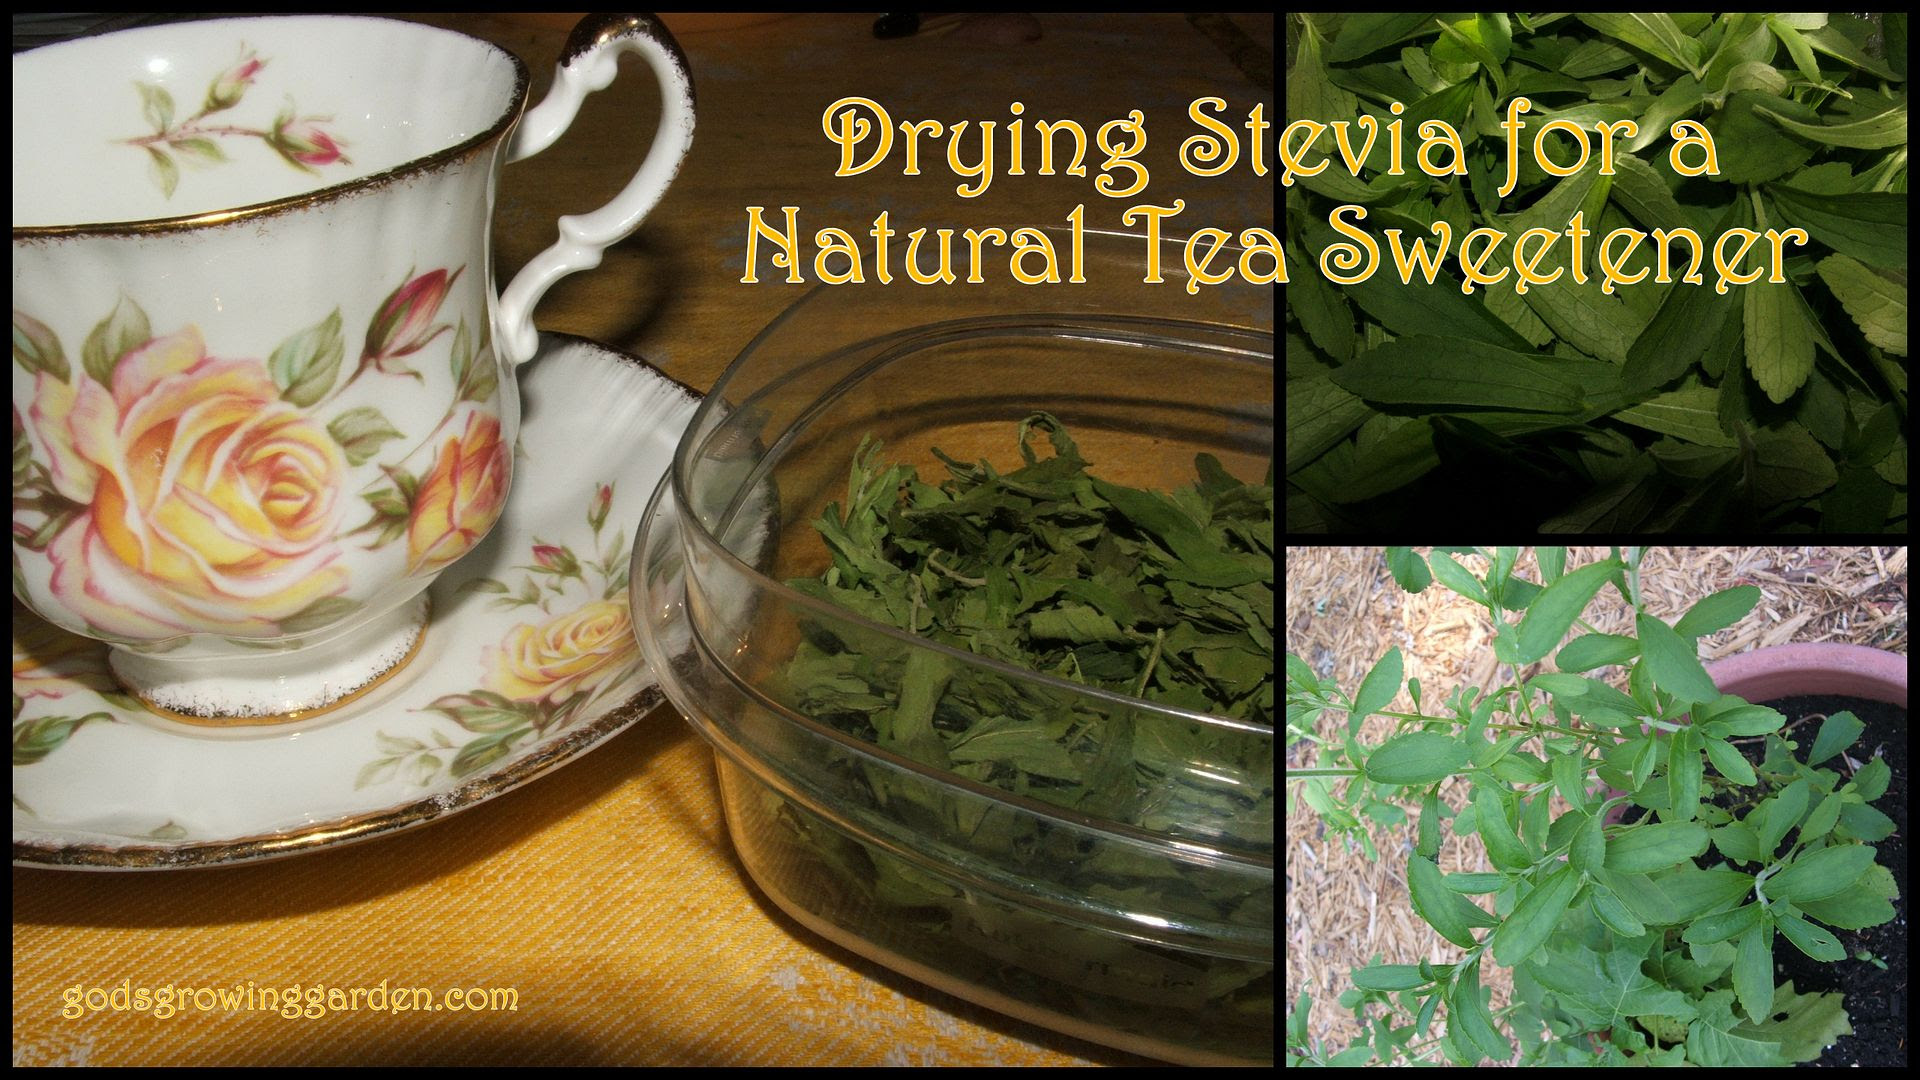 Stevia by Angie Ouellette-Tower for godsgrowinggarden.com photo 2014-10-07_zps908c04c9.jpg